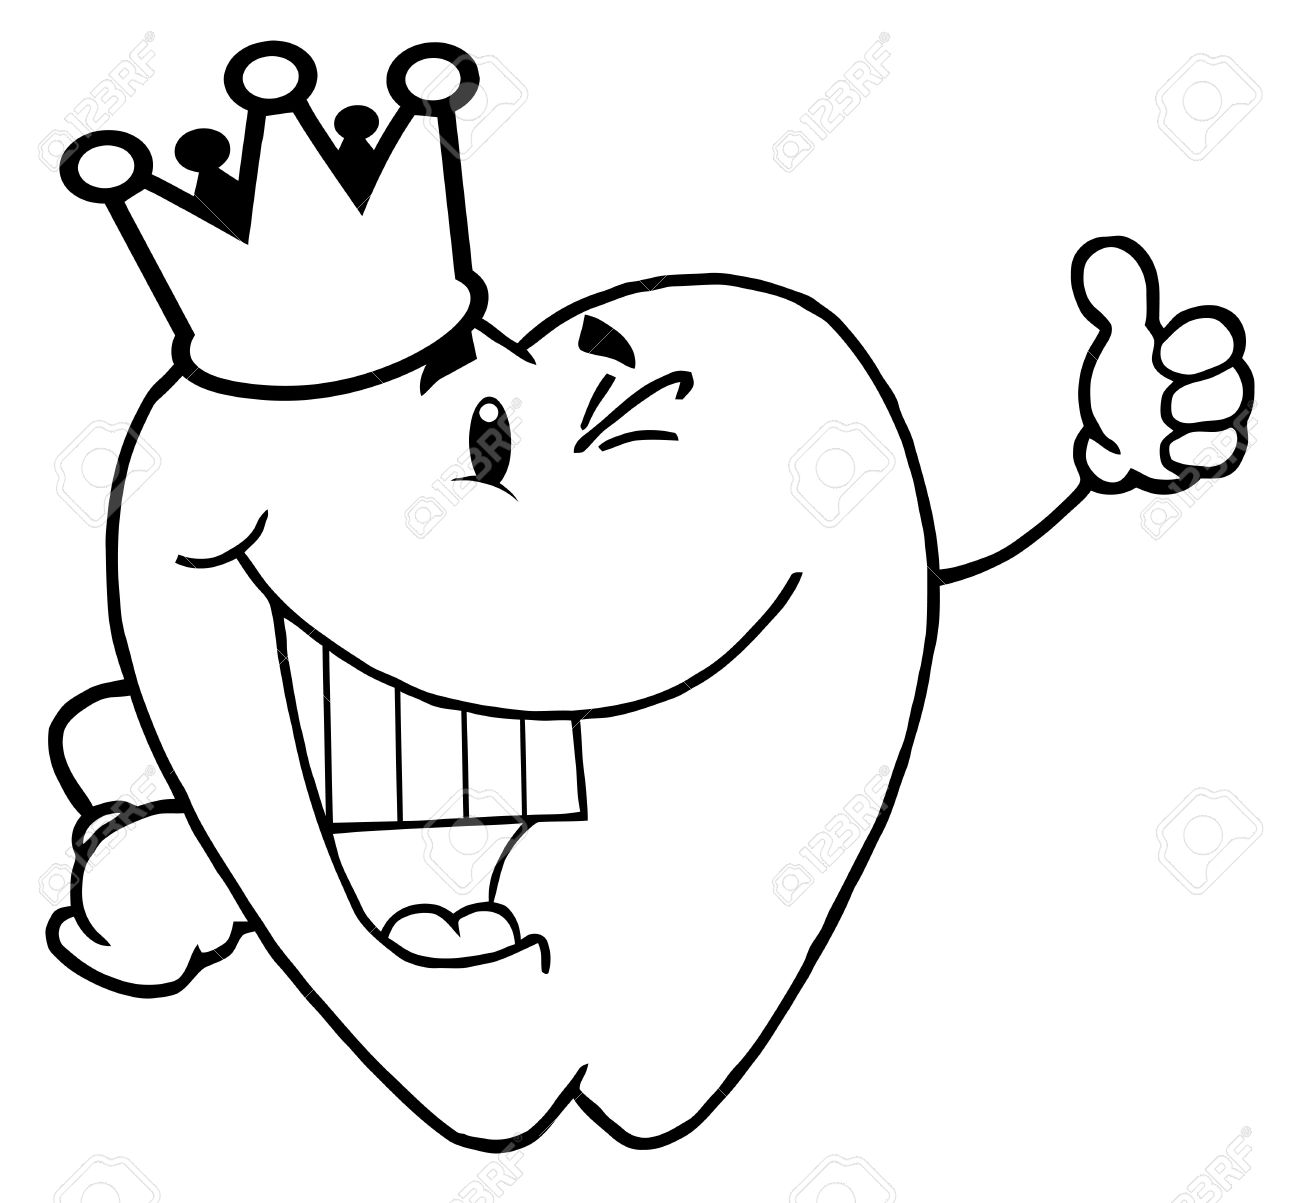 Coloring Page Outline Of A Tooth Character Royalty Free Cliparts ...